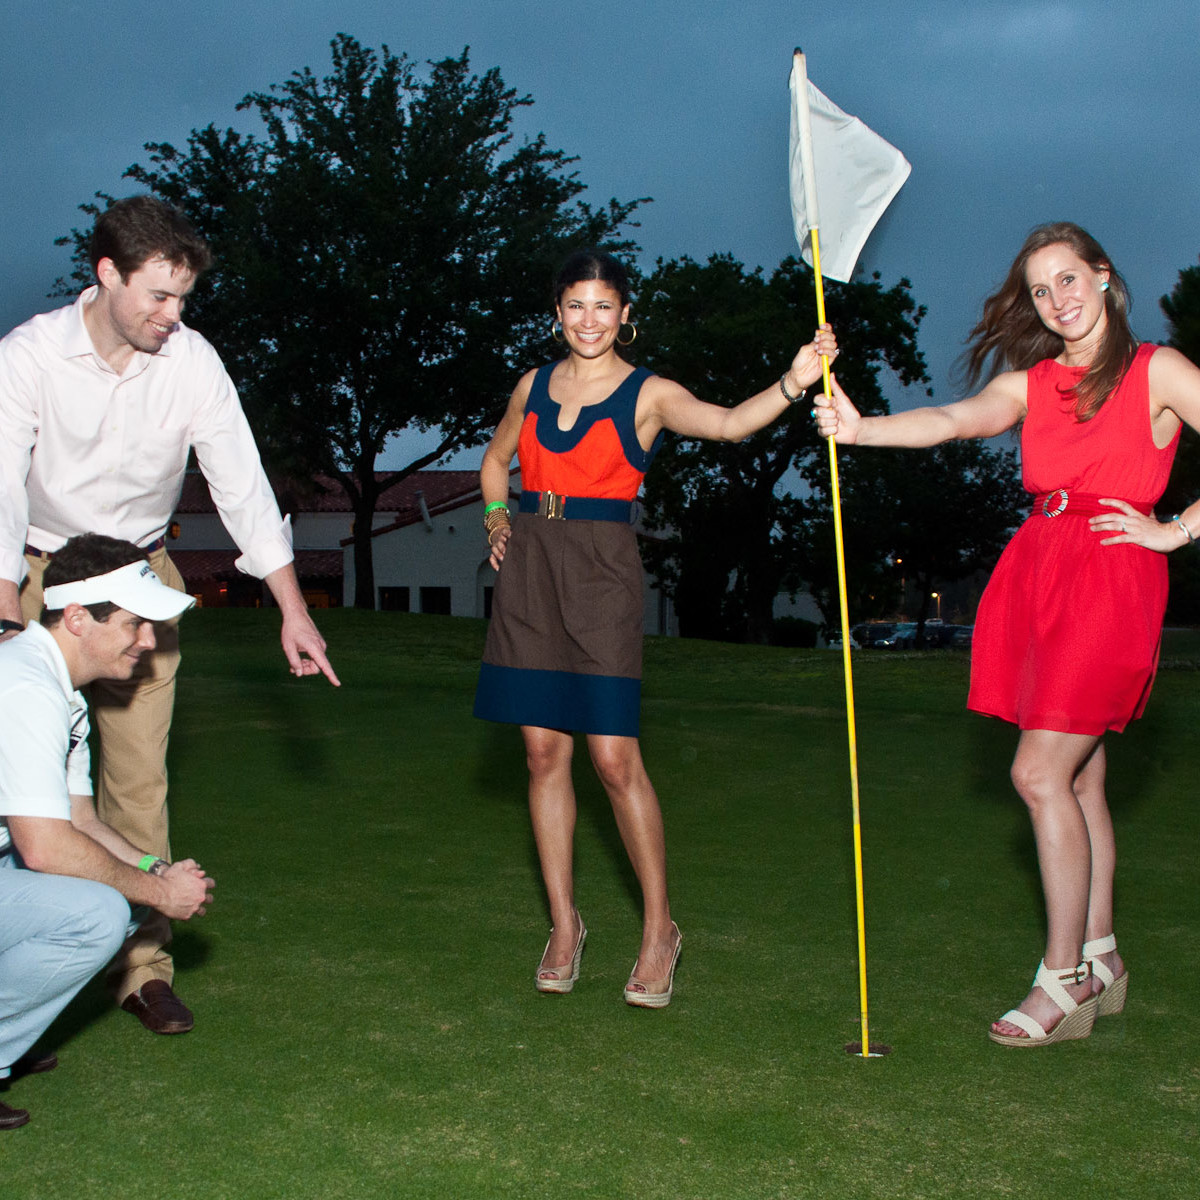 News_Gophers on the Green_May 2011_Chris Bradshaw_Chris Transier_Kristy Bradshaw_Christine Transier